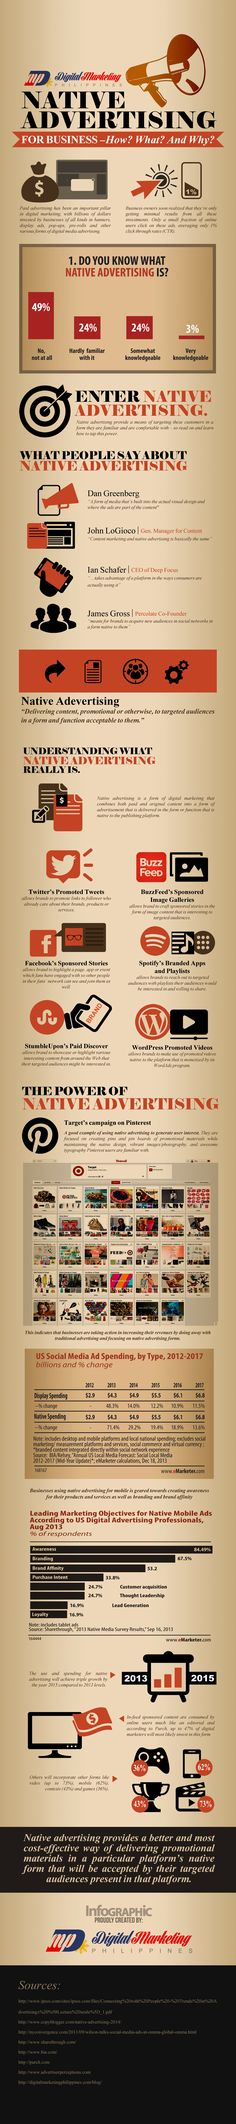 Native Advertising For Business - How, What, and Why? (Infographic)